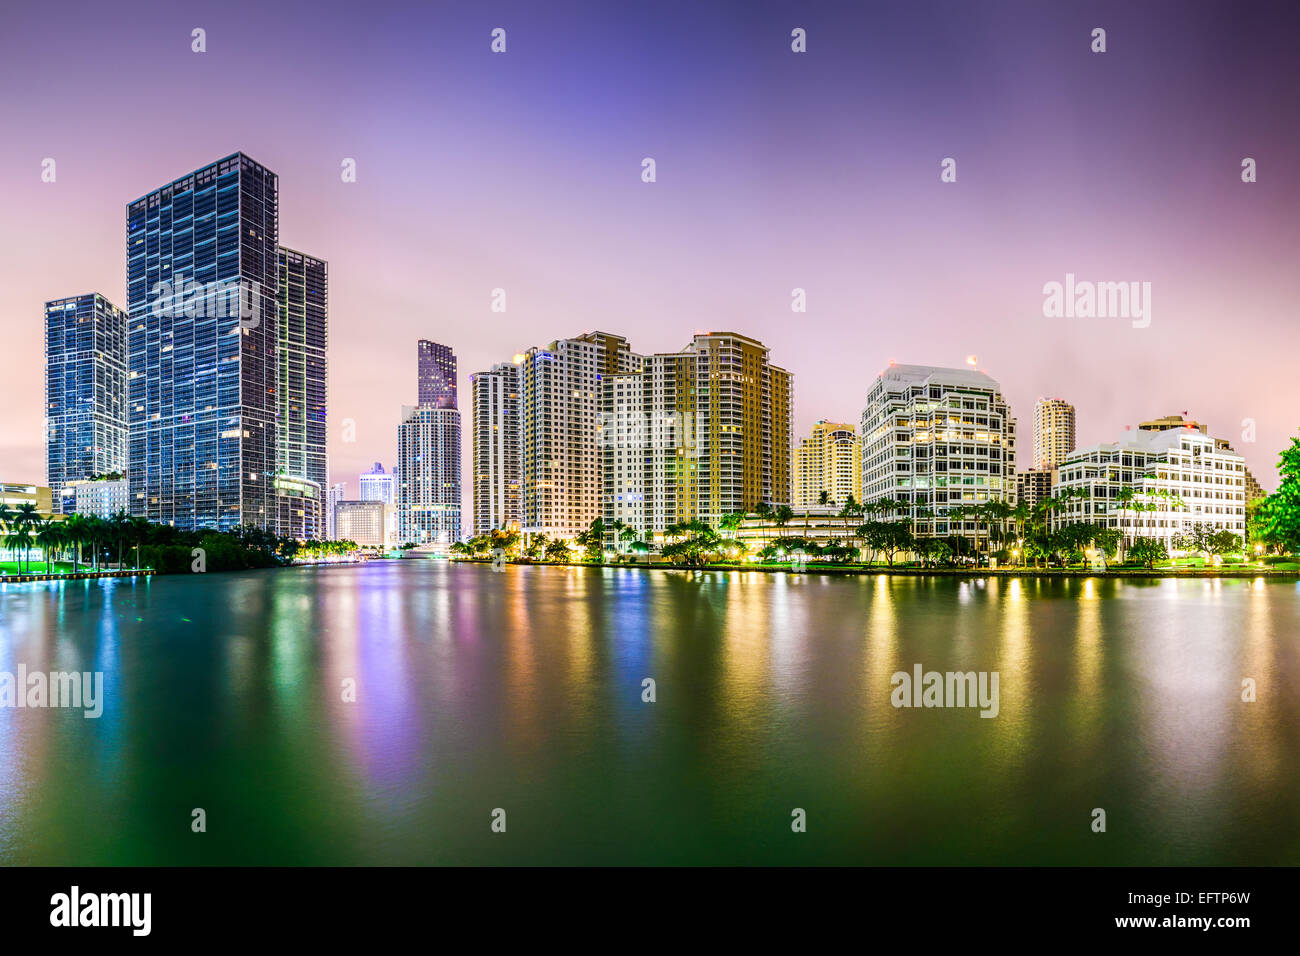 Miami, Florida City skyline. Photo Stock